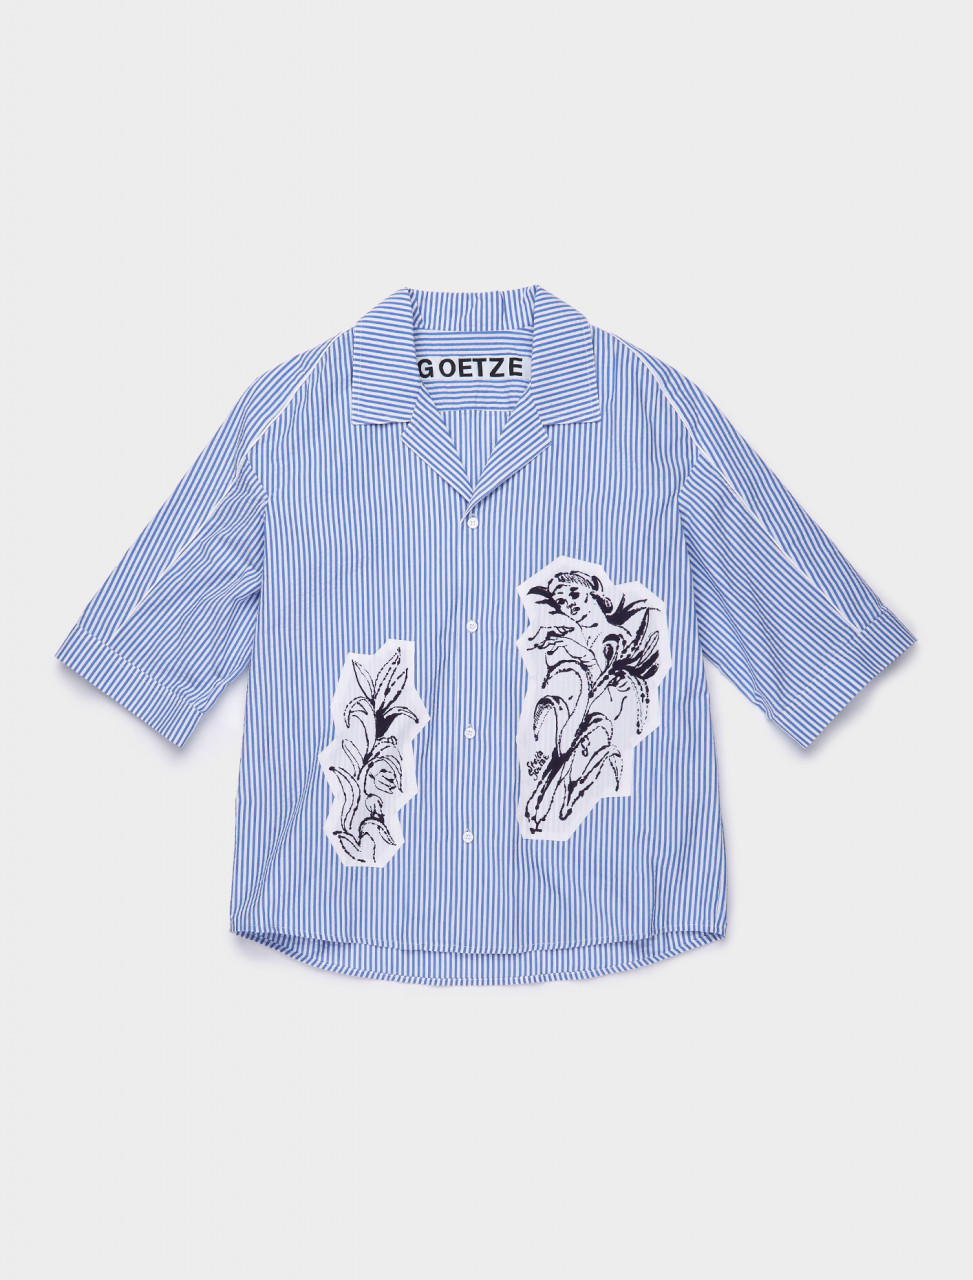 TED05A GOETZE TED PRINTED SHIRT BLUE WHITE STRIPE